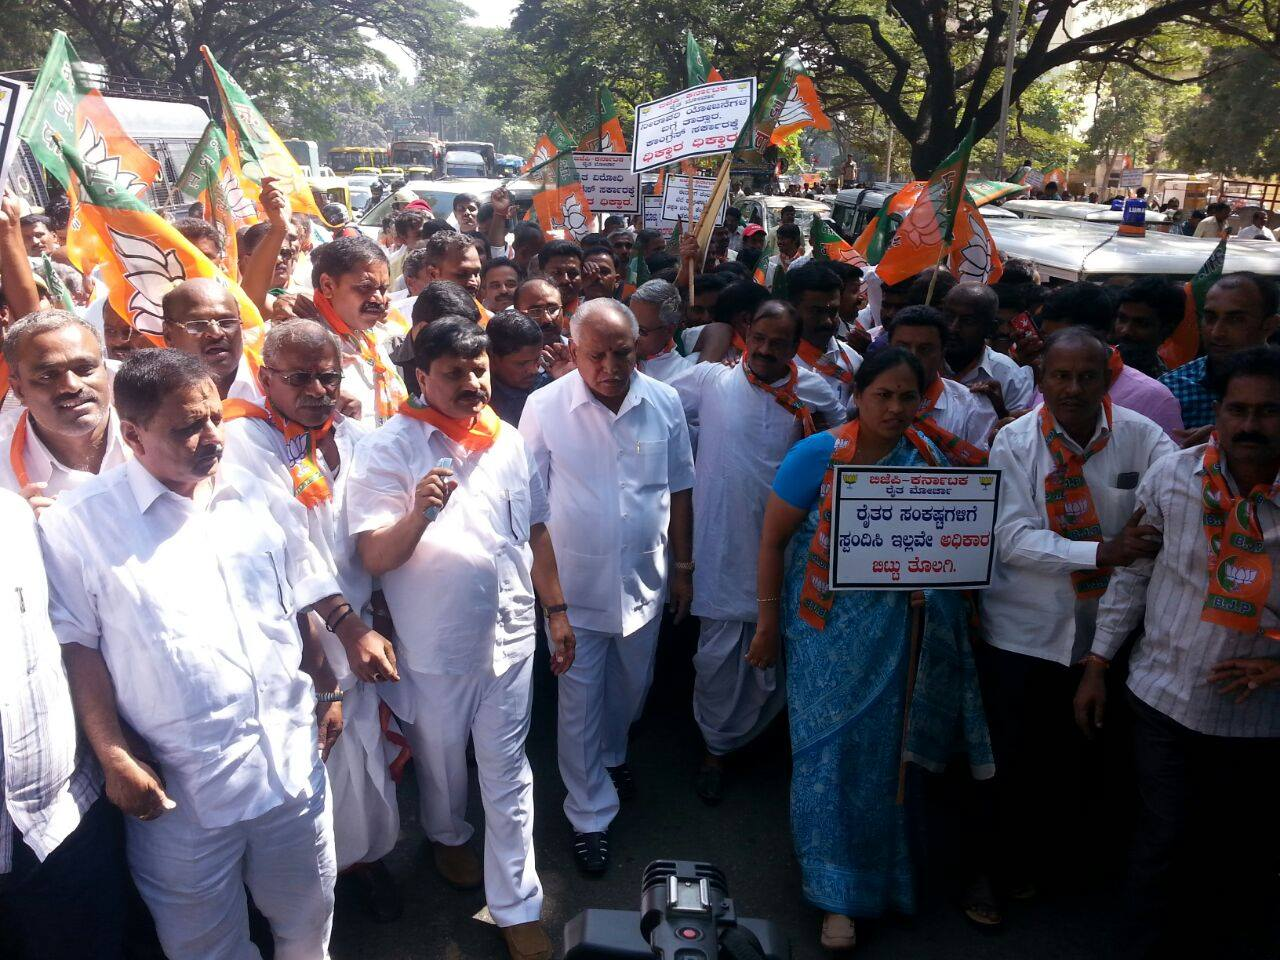 B S Yeddyurappa Participated in the Protest held at Bengaluru against State Govt's policies